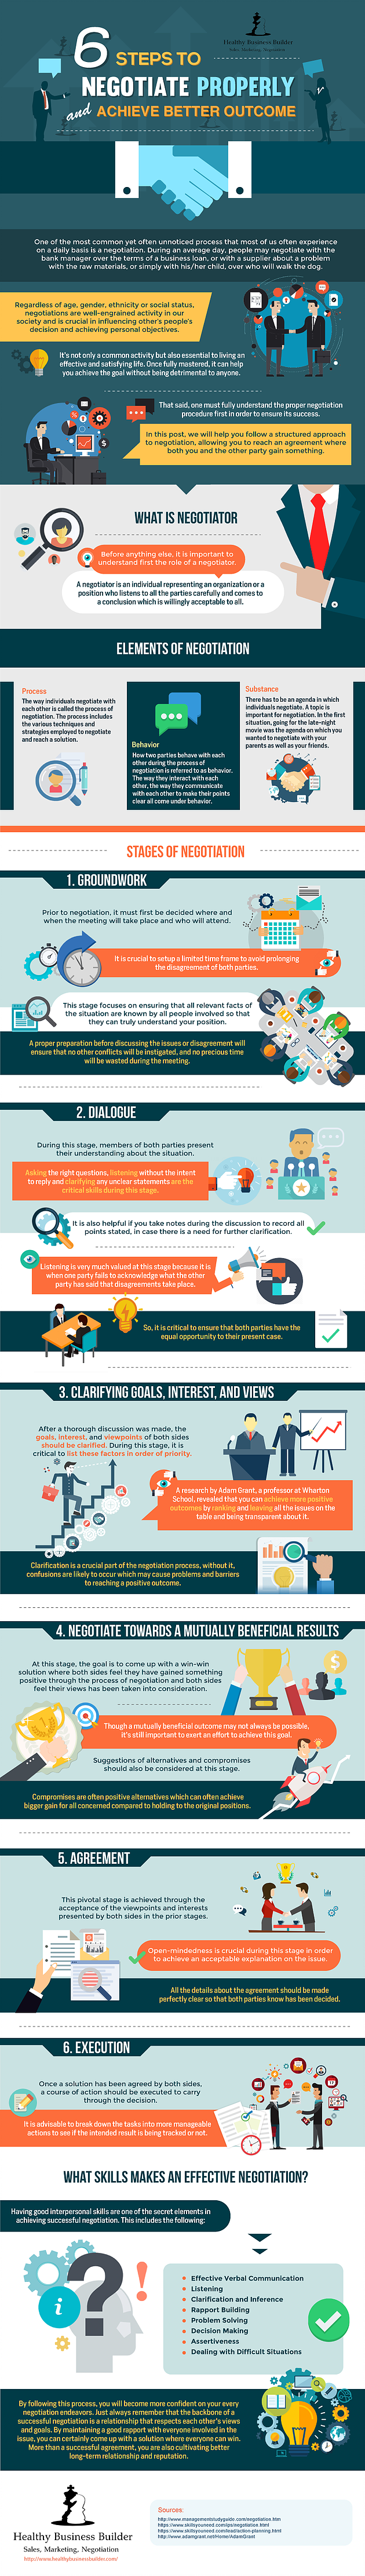 6 Steps to Negotiate Properly and Achieve Better Outcome #Infographic